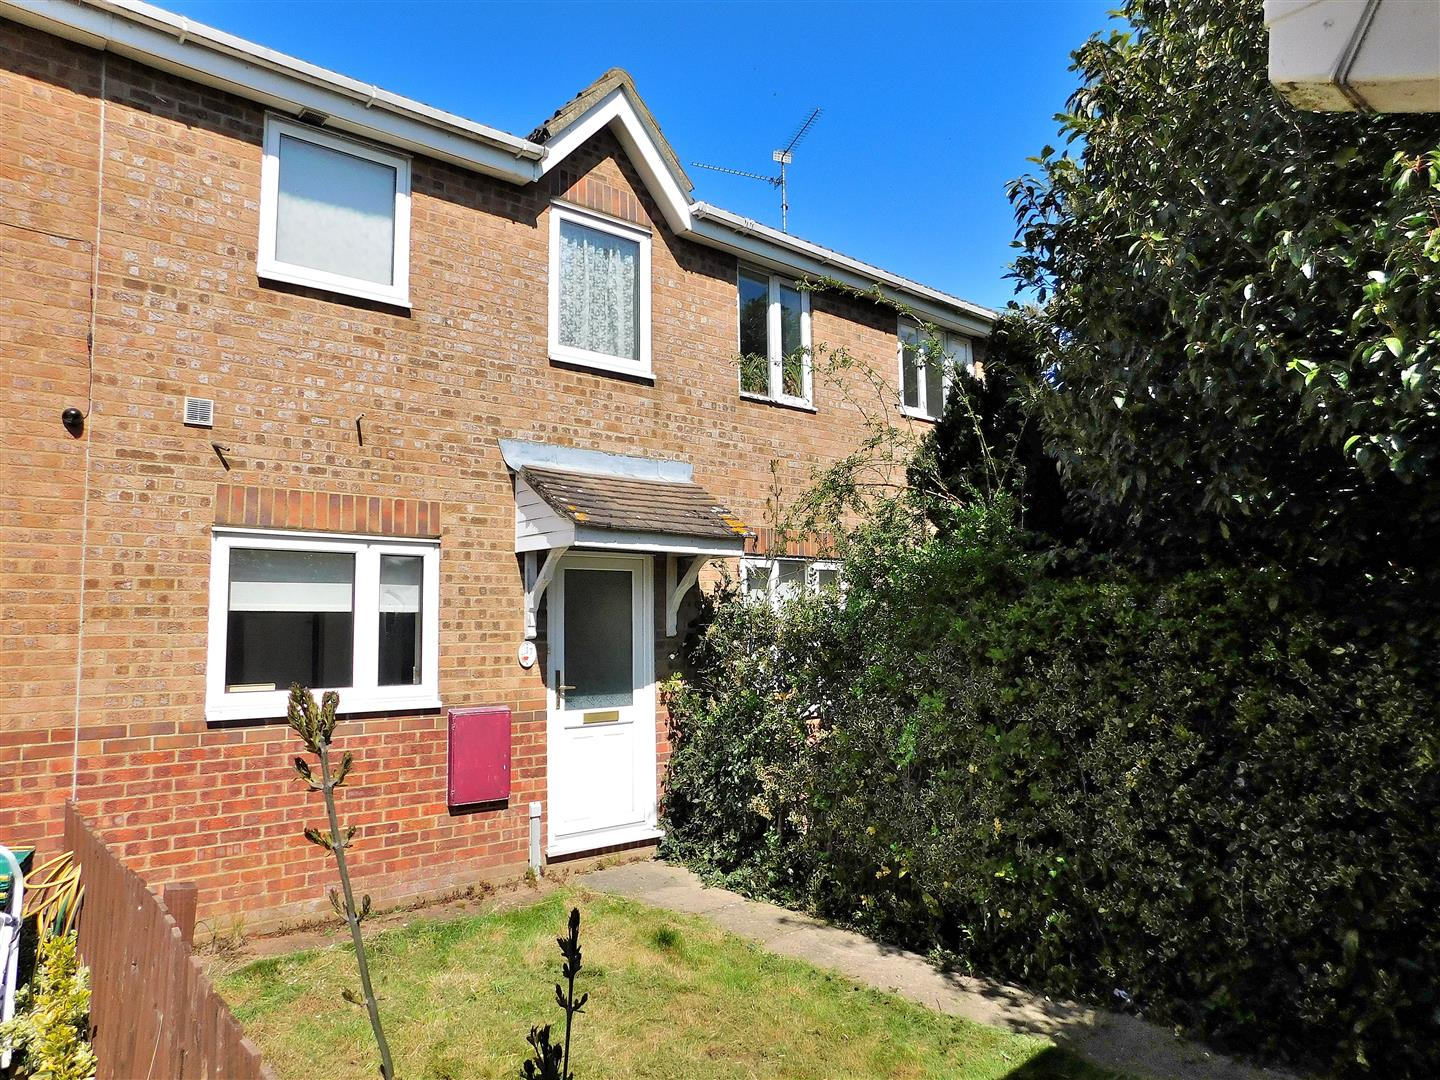 2 bed terraced house for sale in Punsfer Way, King's Lynn, PE34